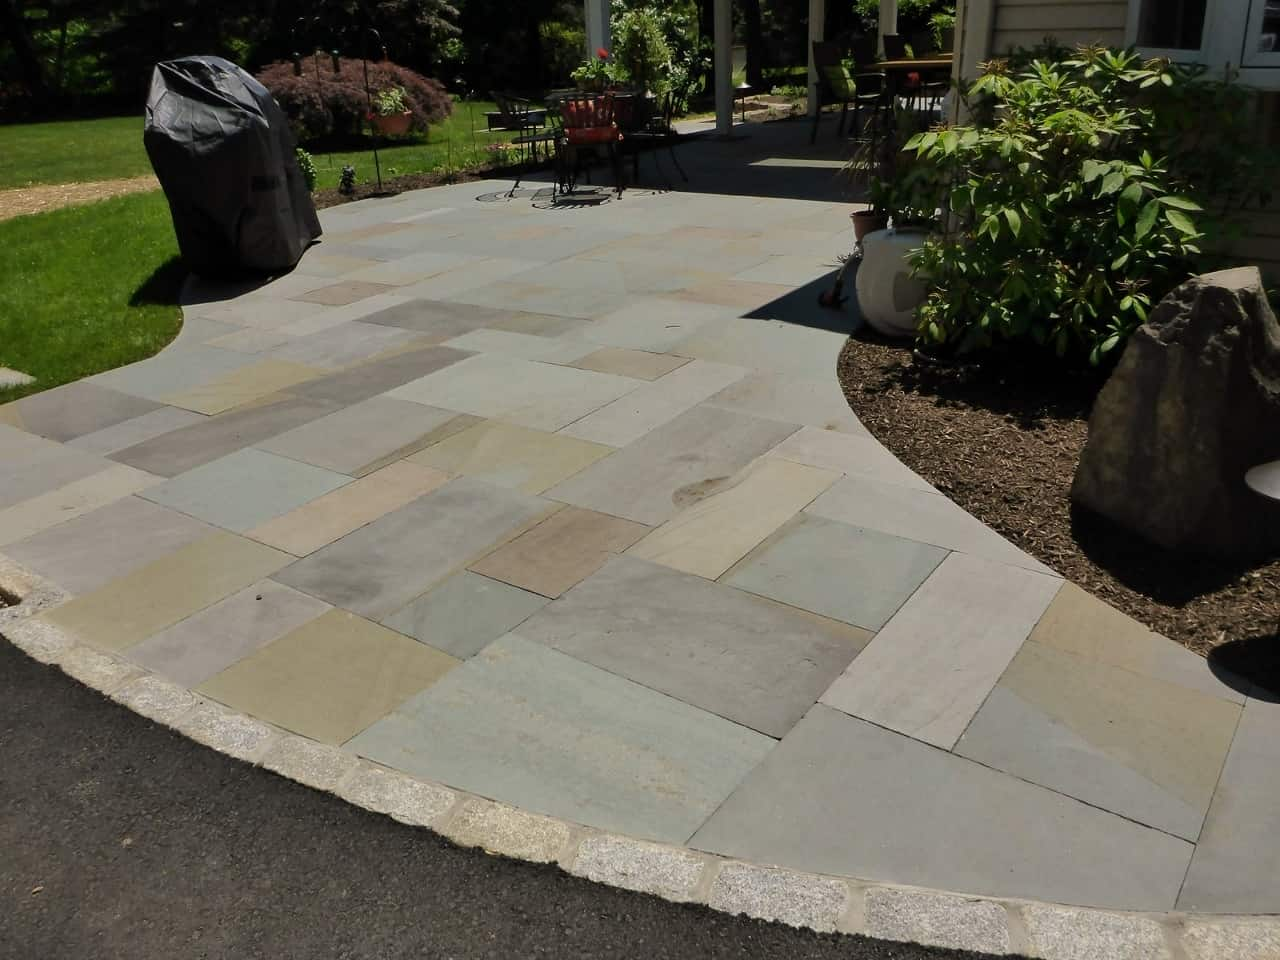 Variegated Thermal Paving with Belgium Block Border